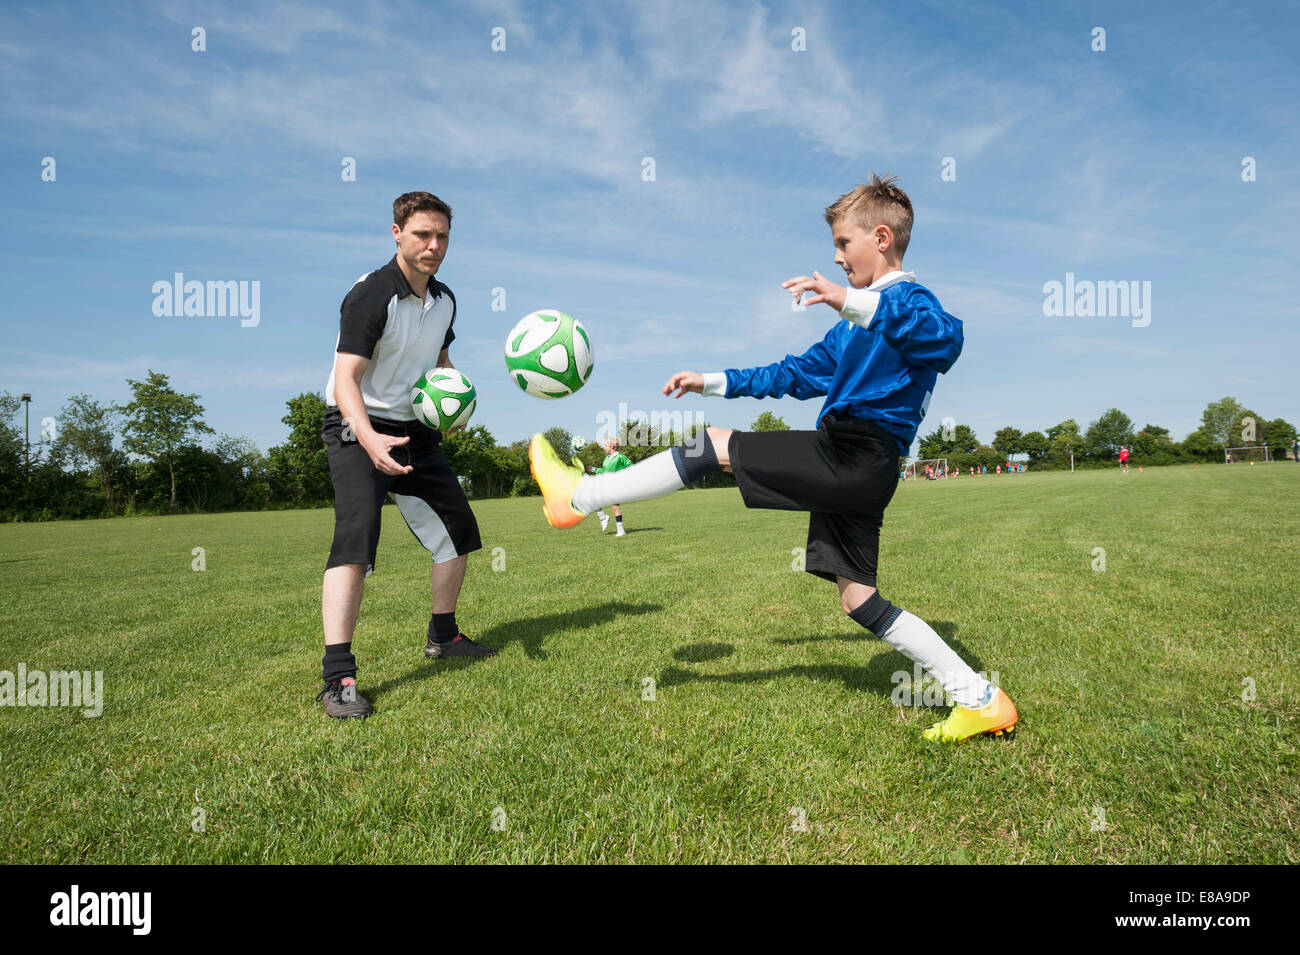 Soccer trainer teaching young player helping - Stock Image